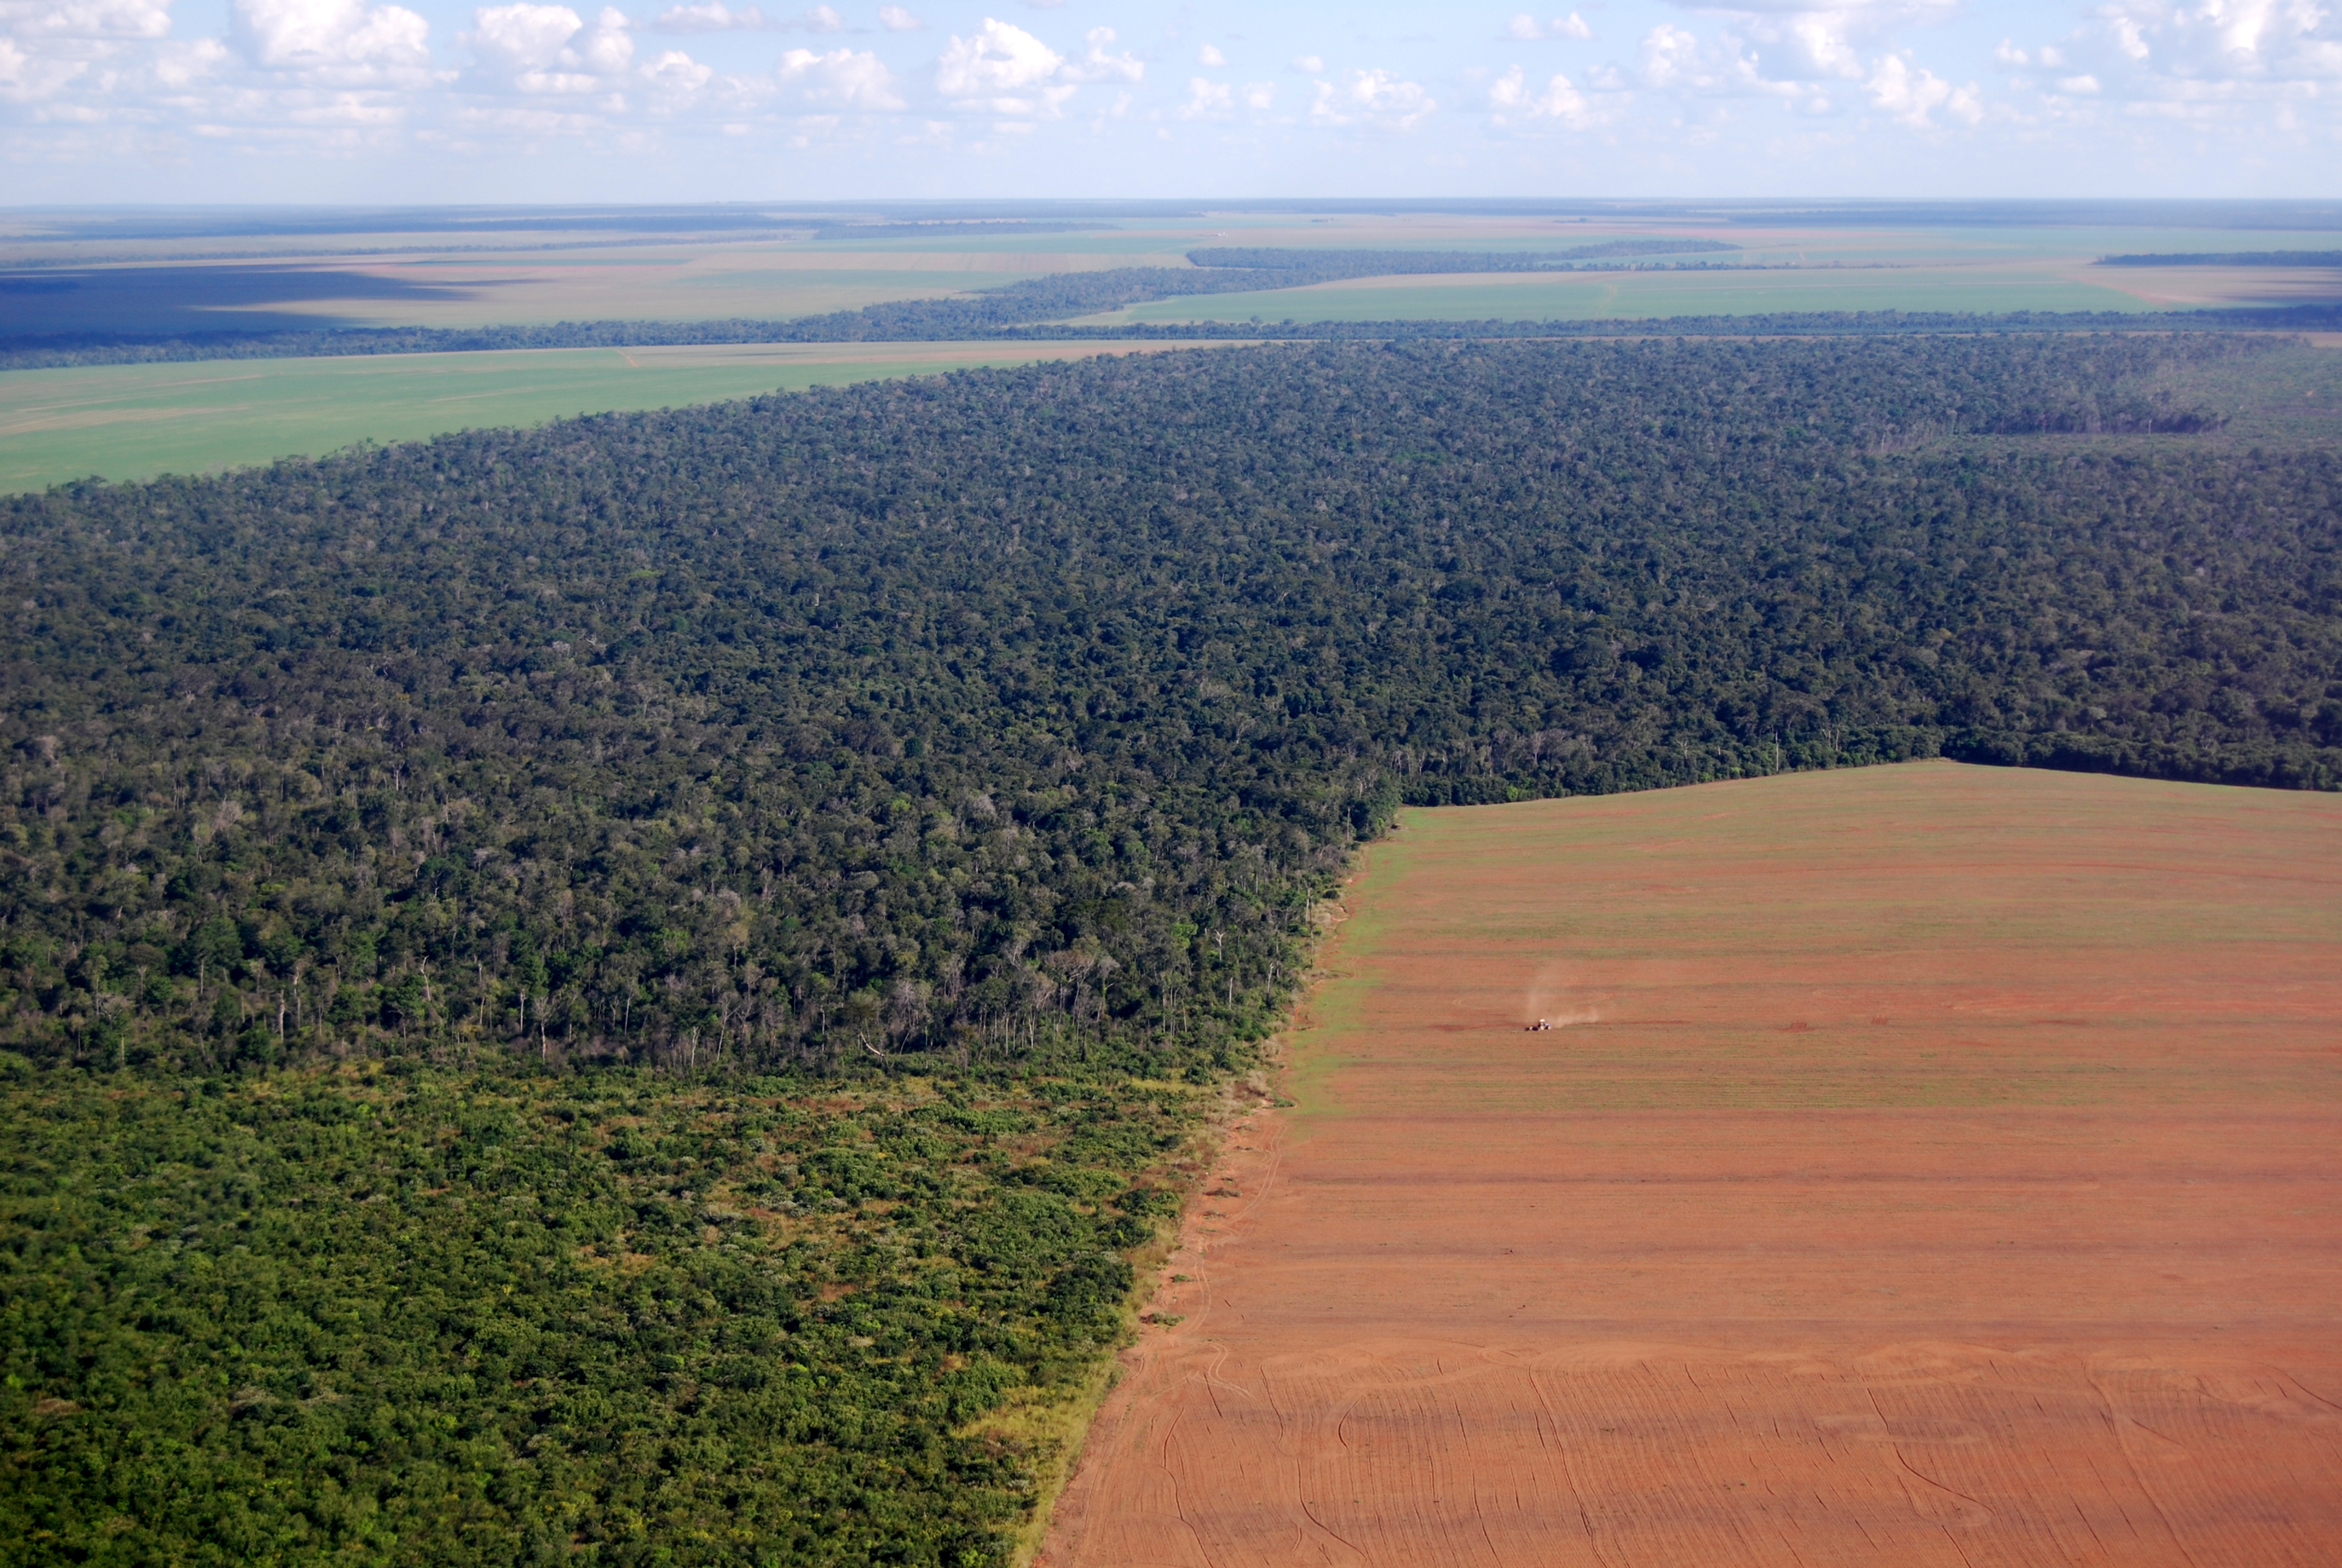 Forest Trends shows the link between commercial agriculture and illegal deforestation